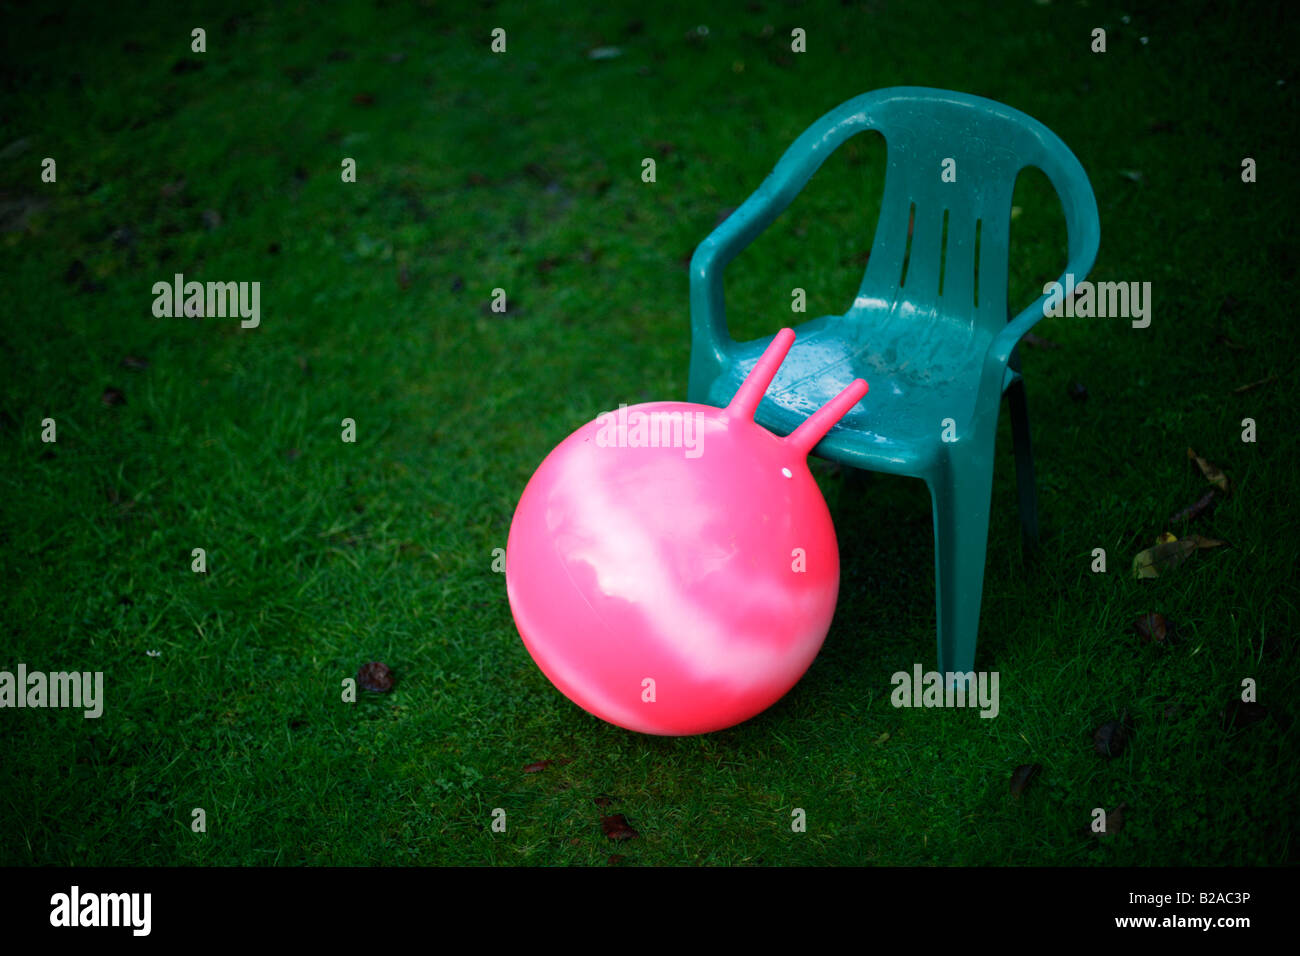 Pink moonhooper on green grass garden lawn with plastic chair - Stock Image